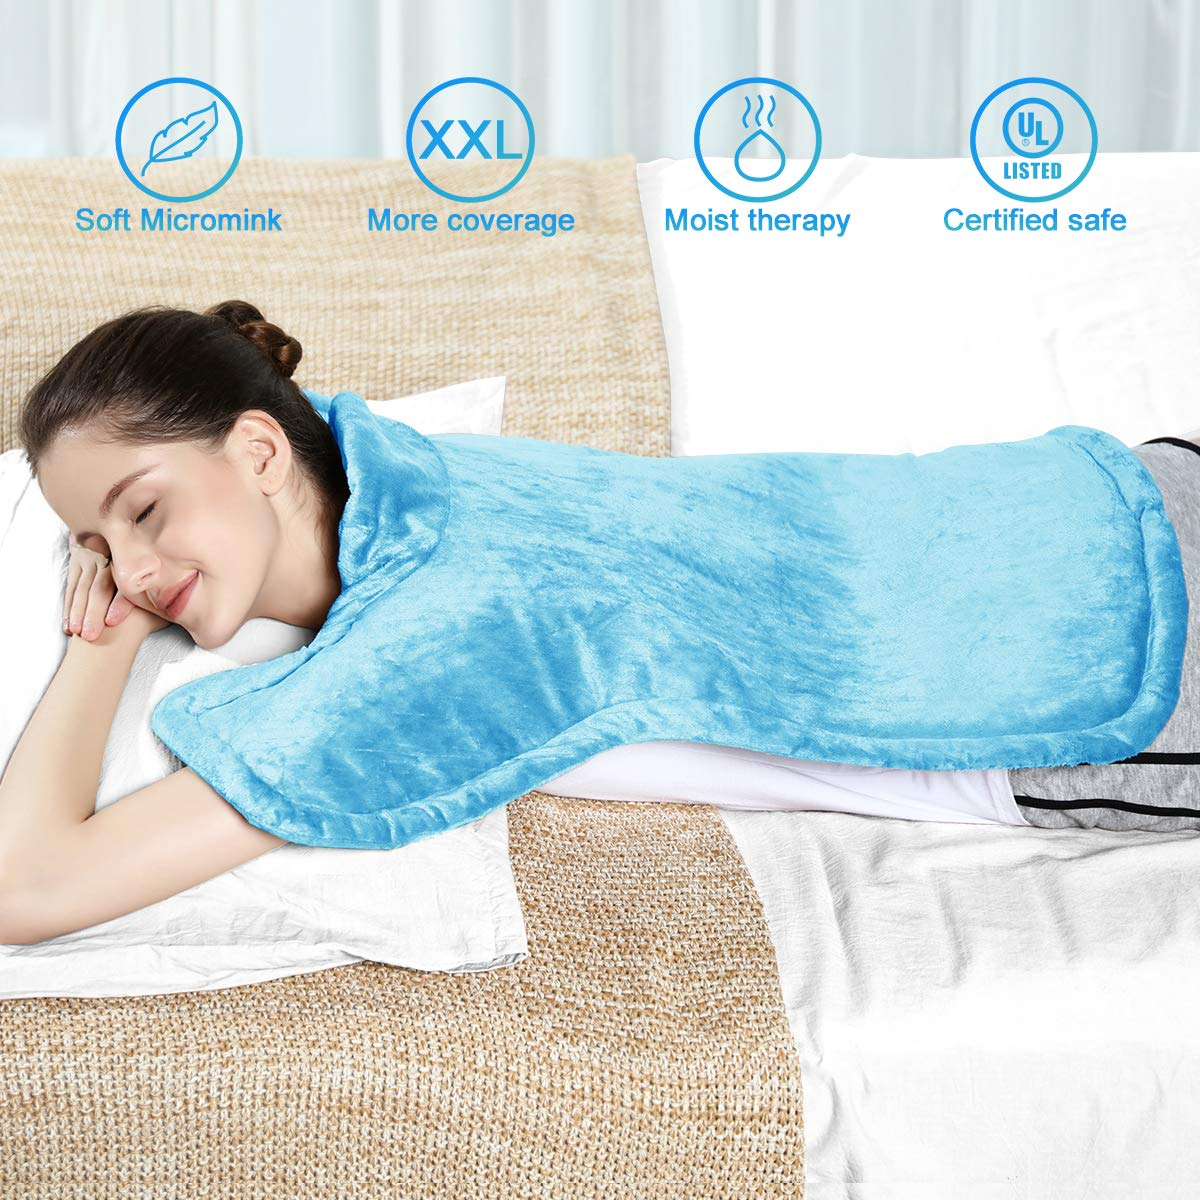 REVIX XXL Long Heating Pad for Full Back, Neck and Shoulders Pain Relief, 24 * 29'' Extra Large Moist Electric Heat Pads with Auto-Off, Fast-Heating and Elastic Strap, UL Listed, Sky Blue by REVIX